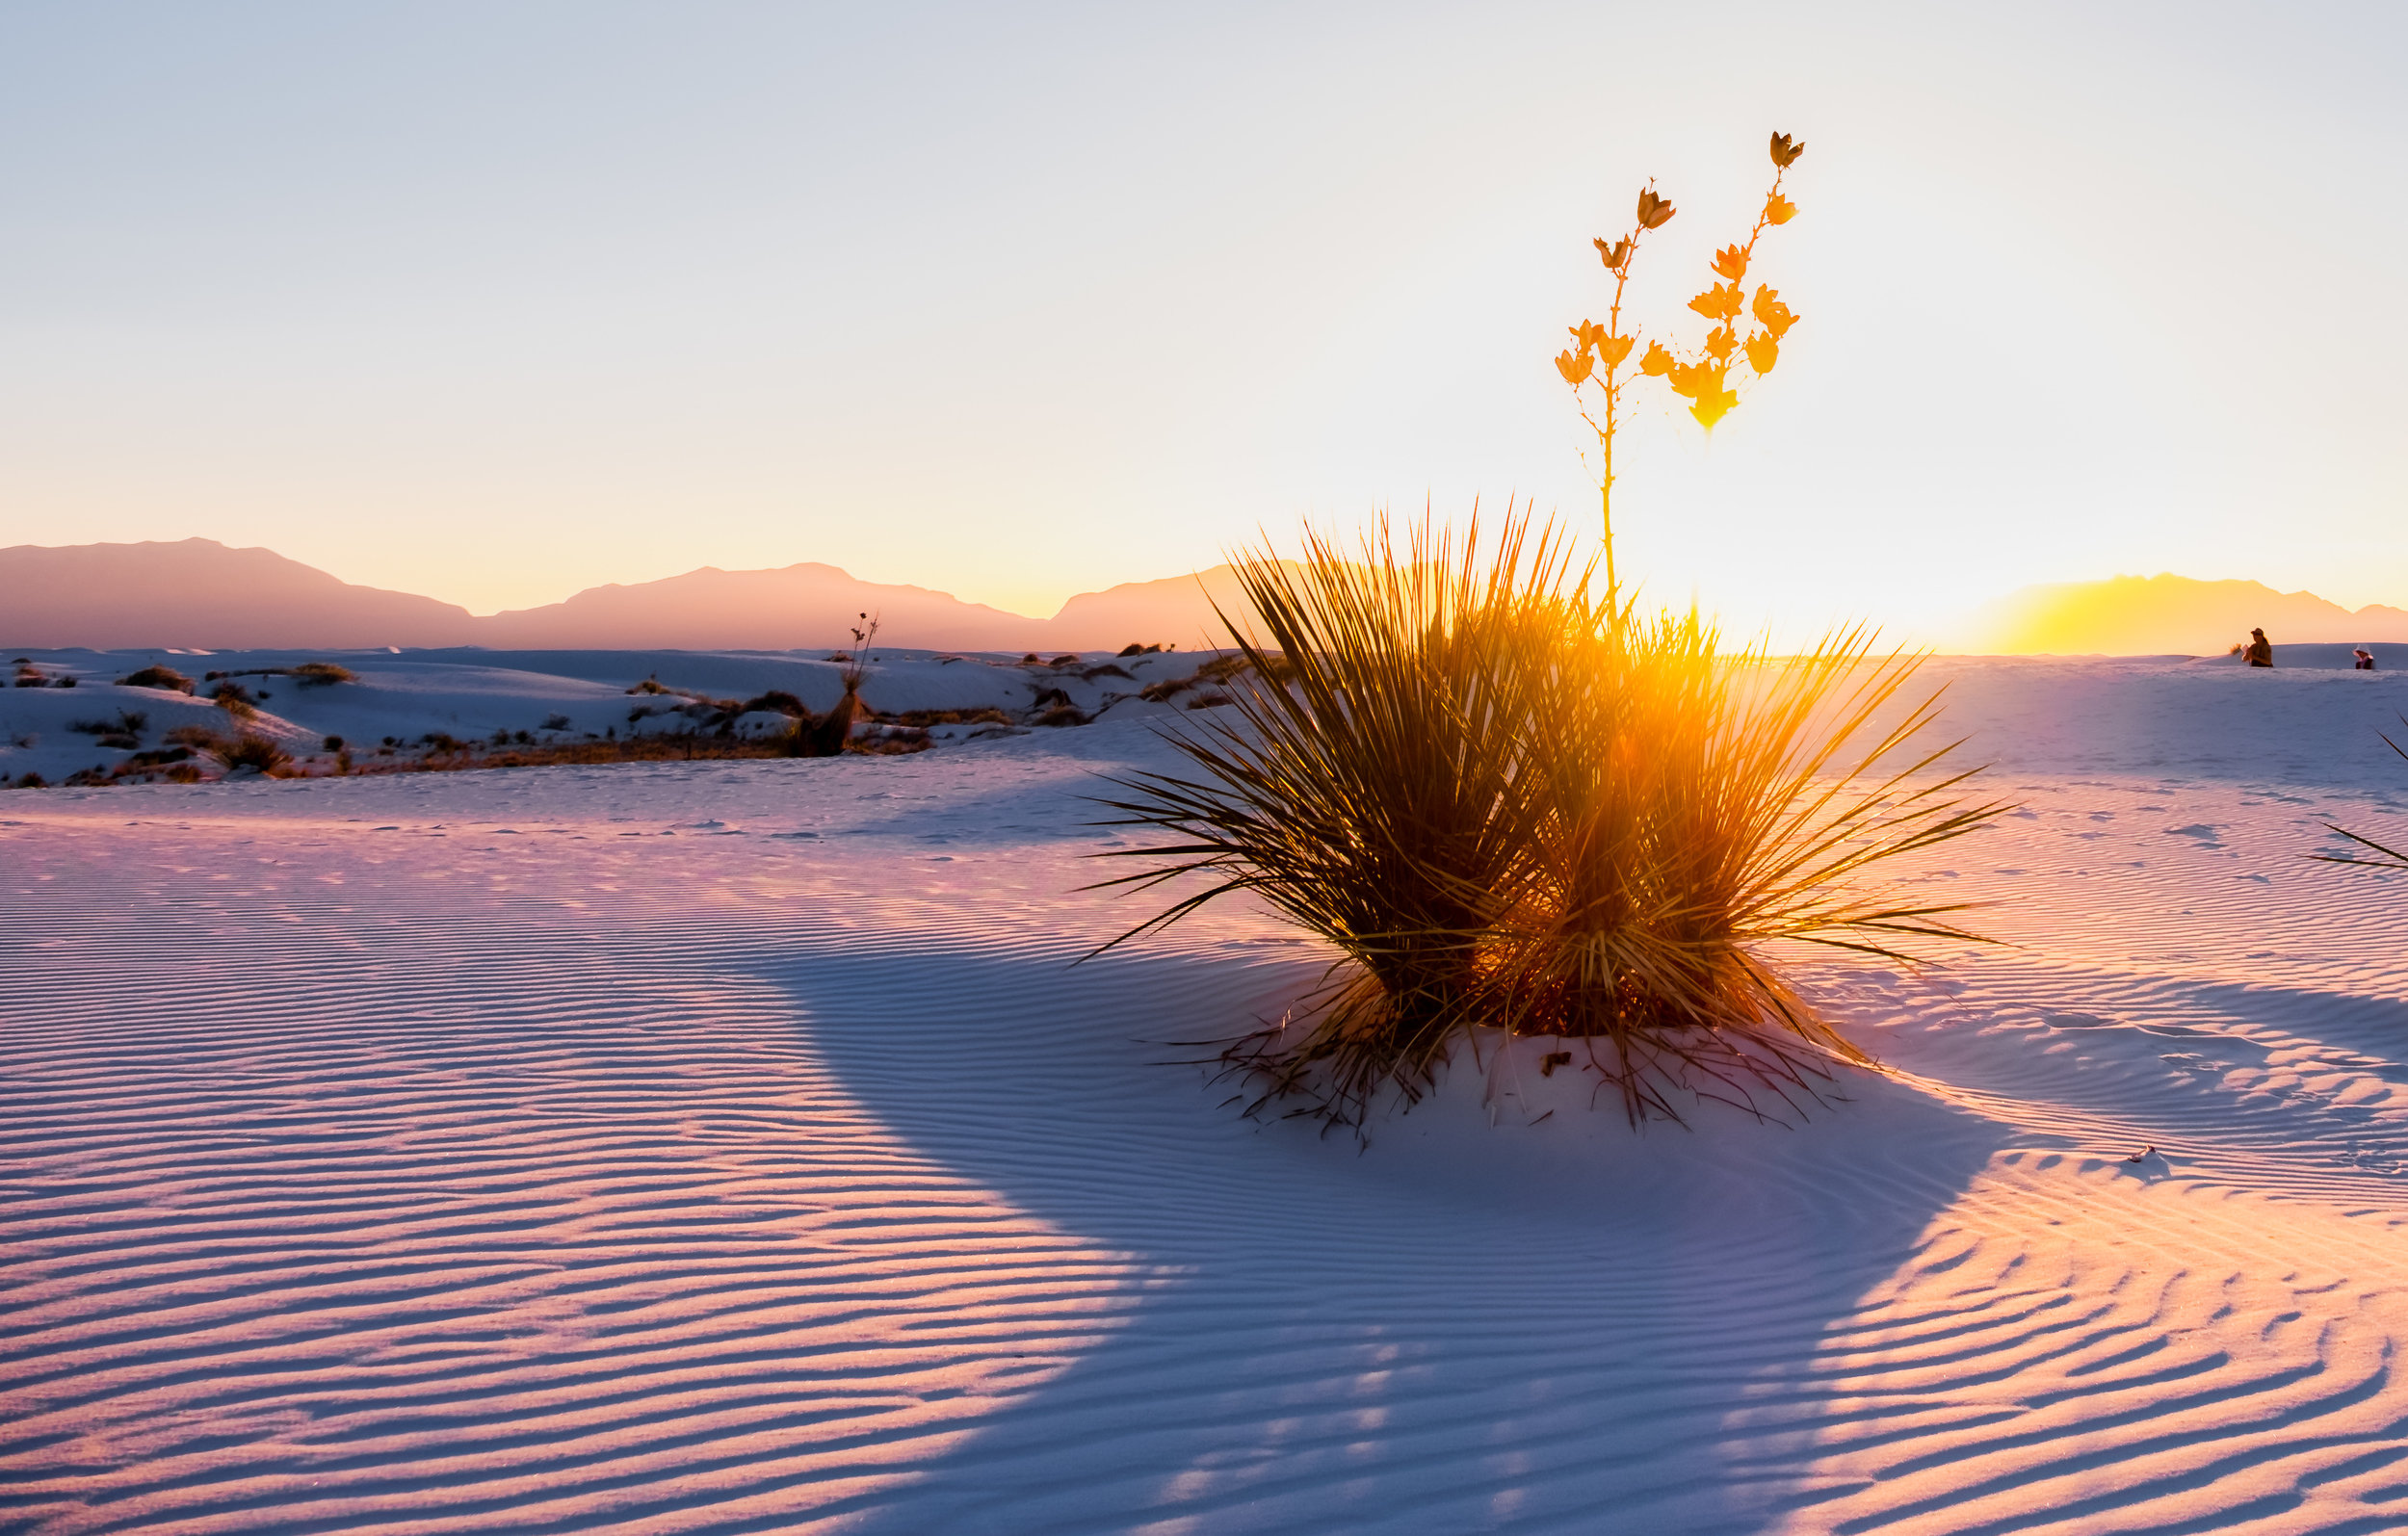 White Sands National Monument in New Mexico